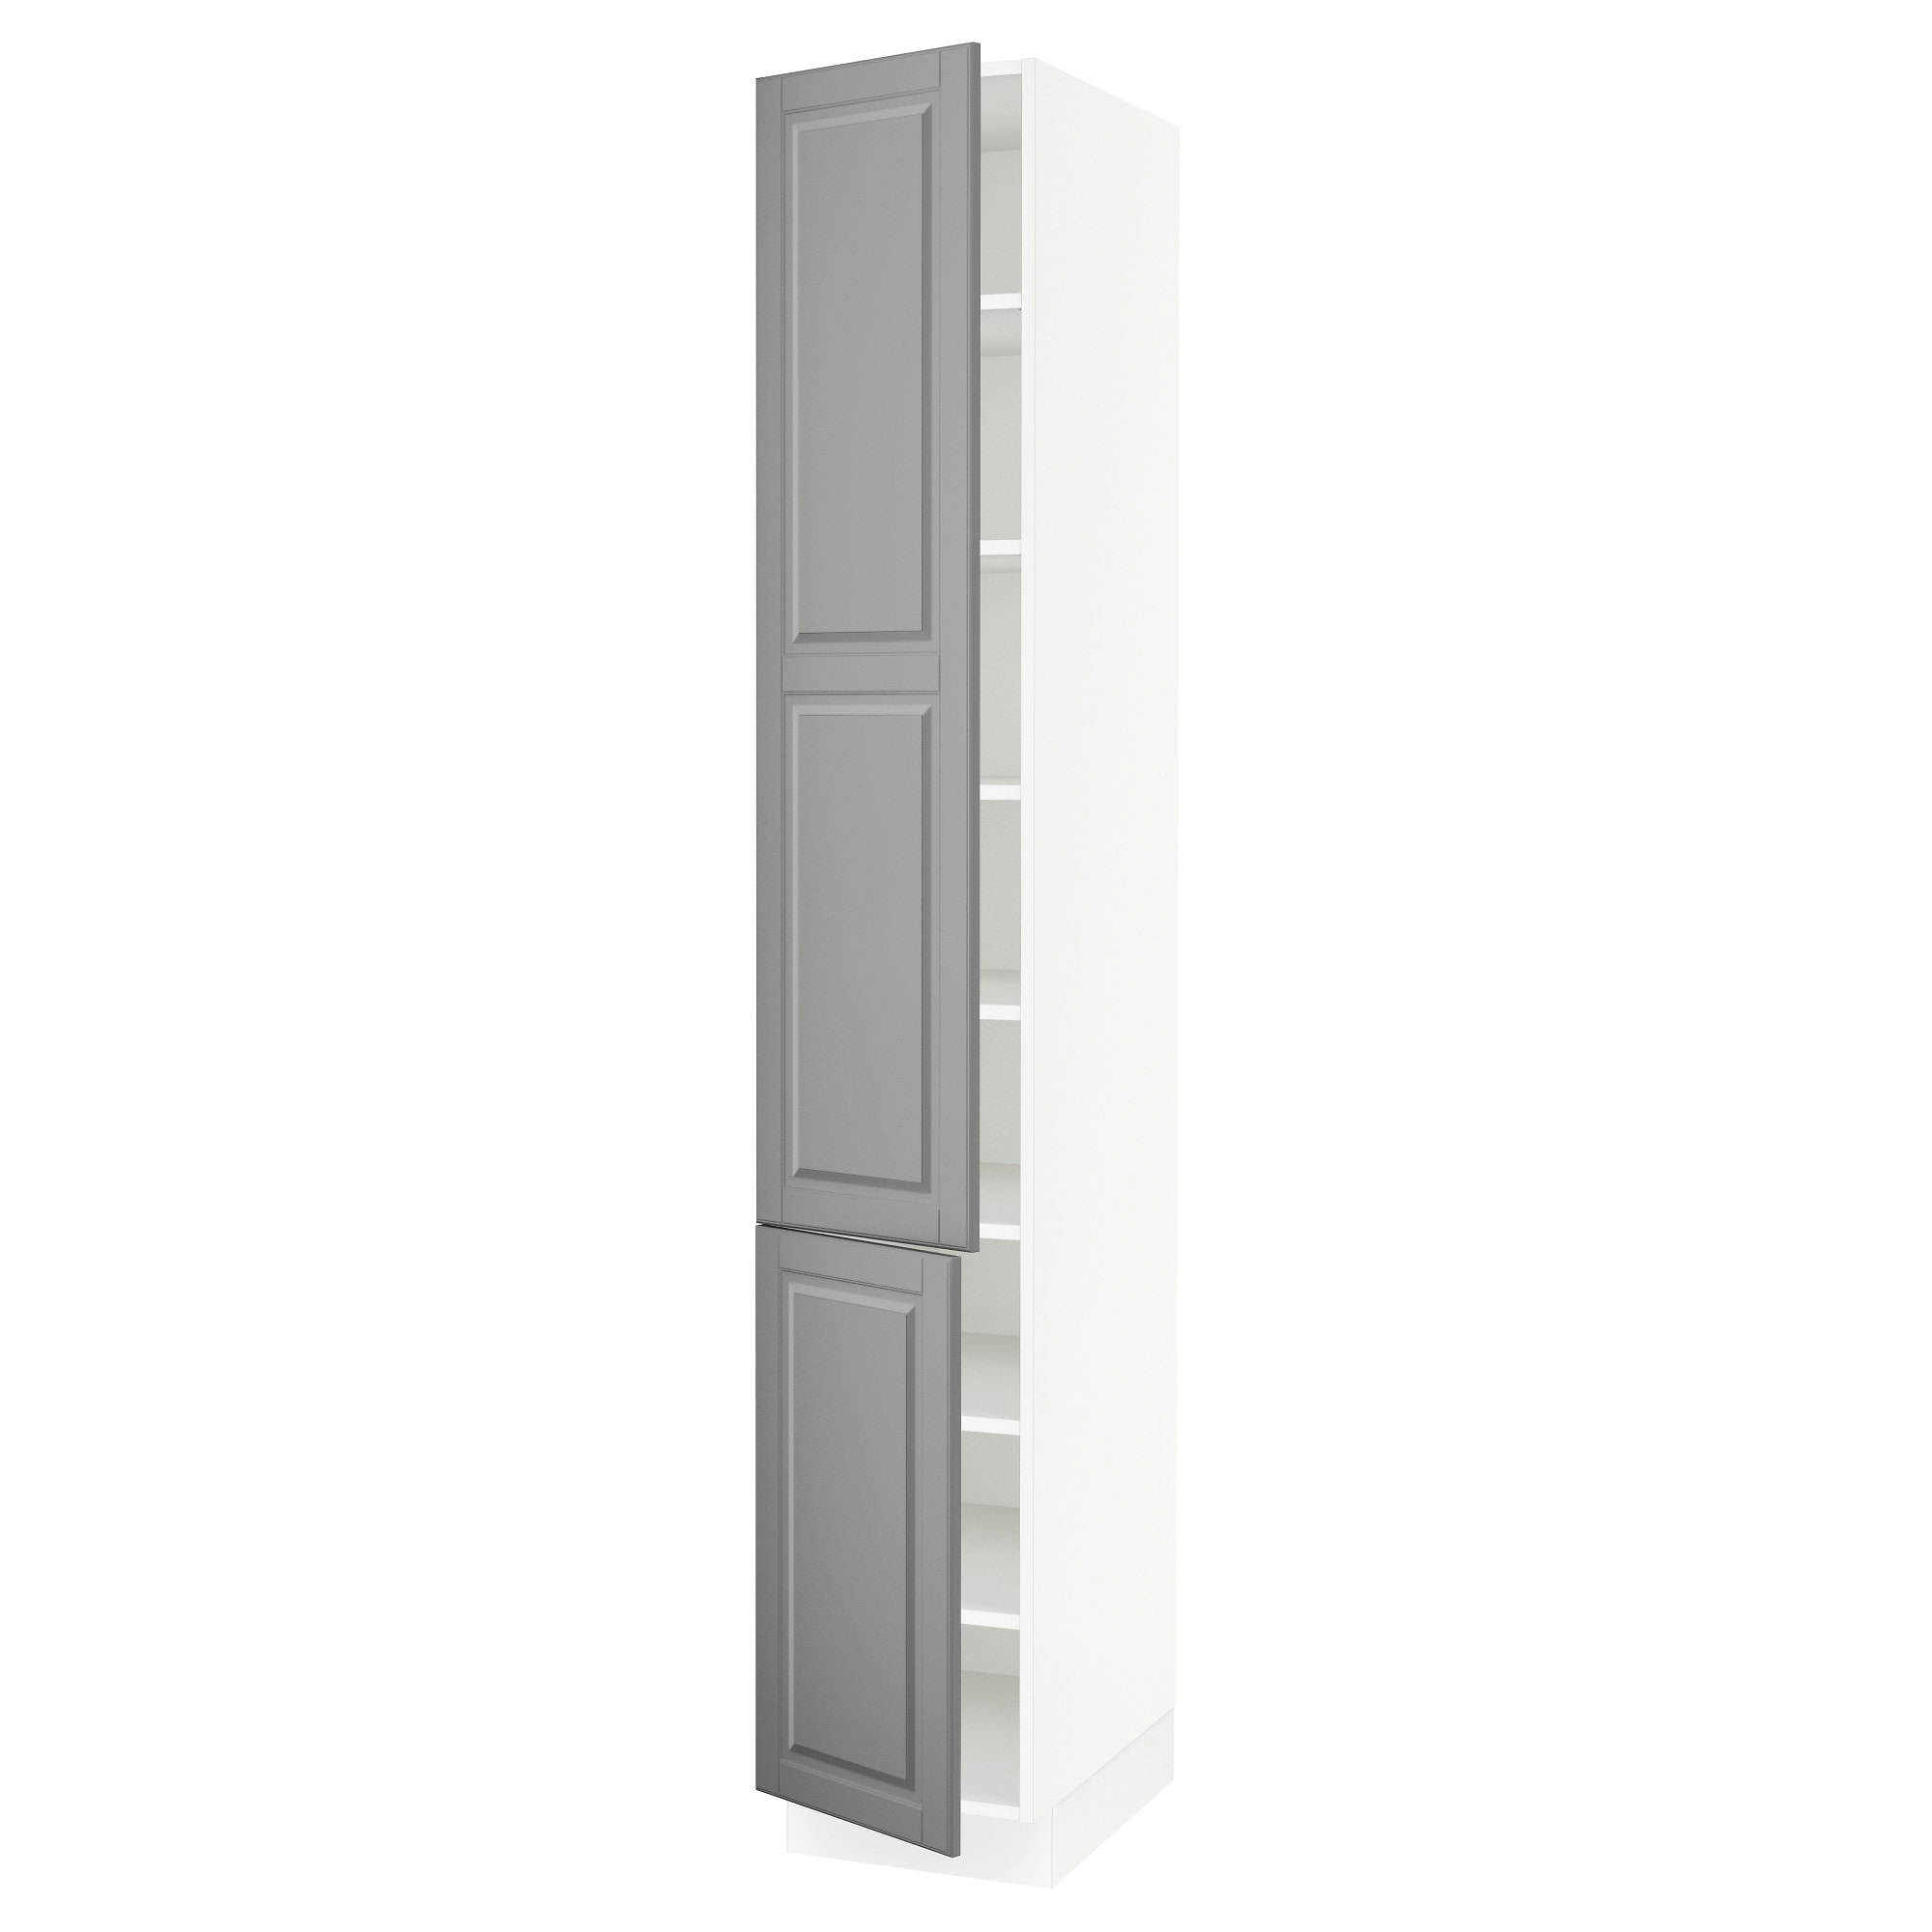 tall kitchen pantry cabinet. SEKTION high cabinet with shelves  2 doors white Bodbyn gray Width 15 Tall Kitchen Cabinets System IKEA